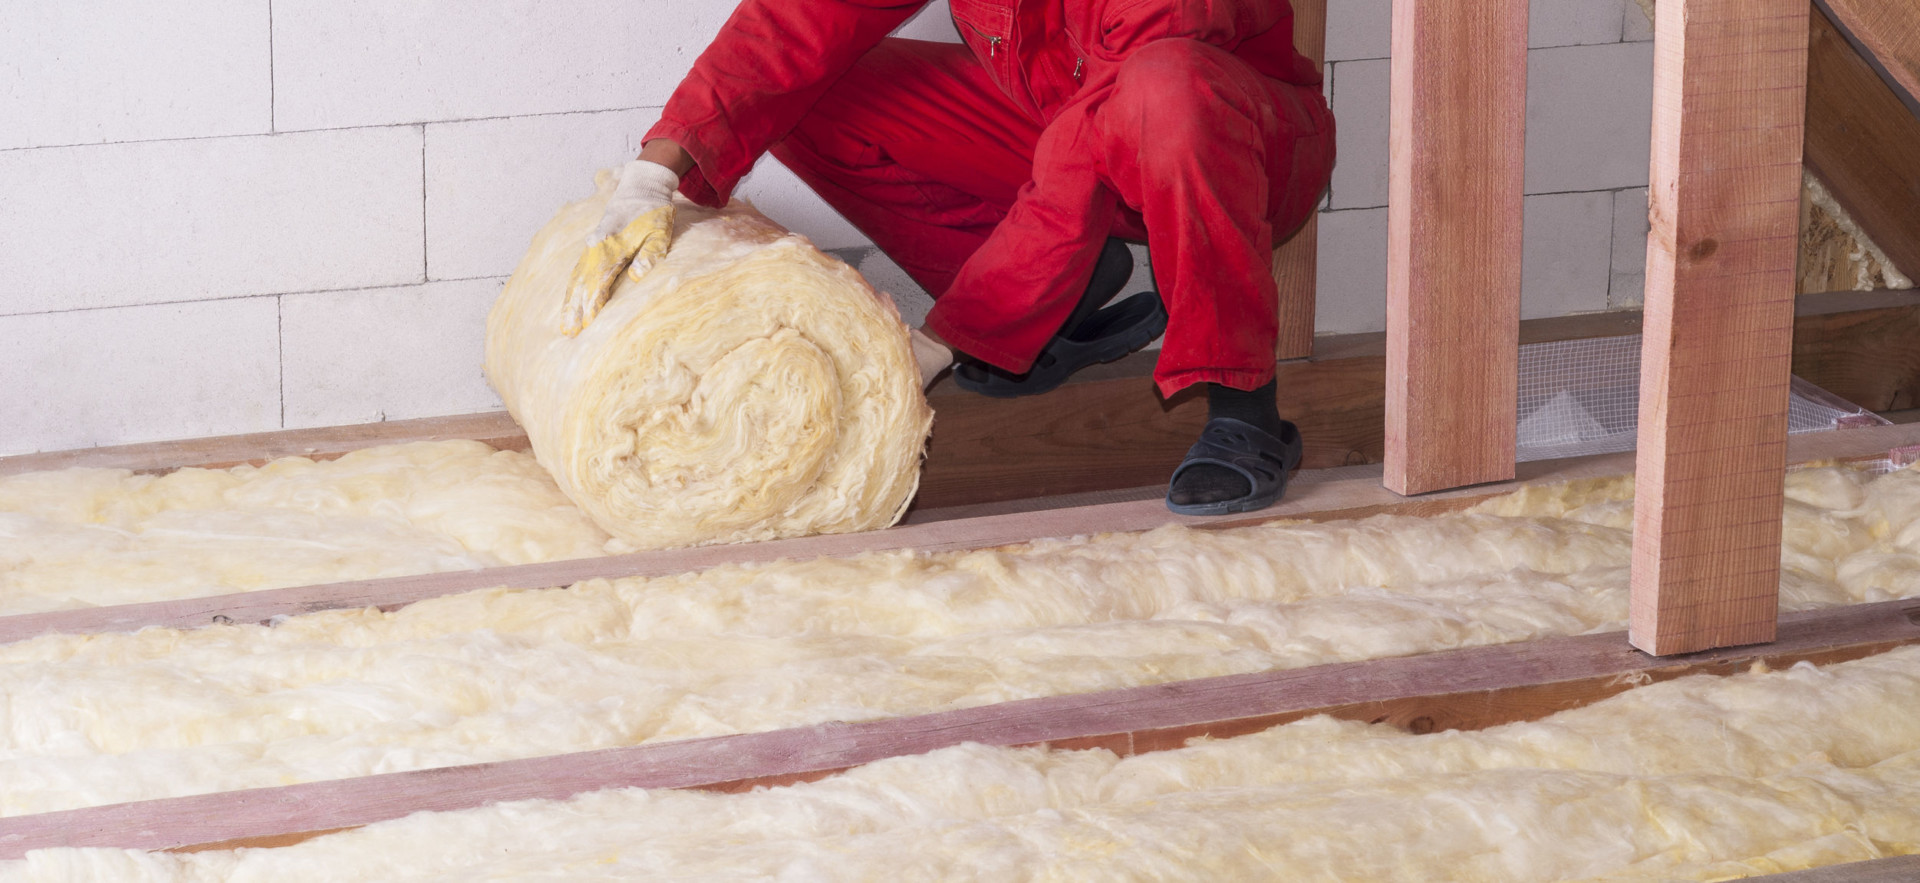 Installing Insulation in Attic